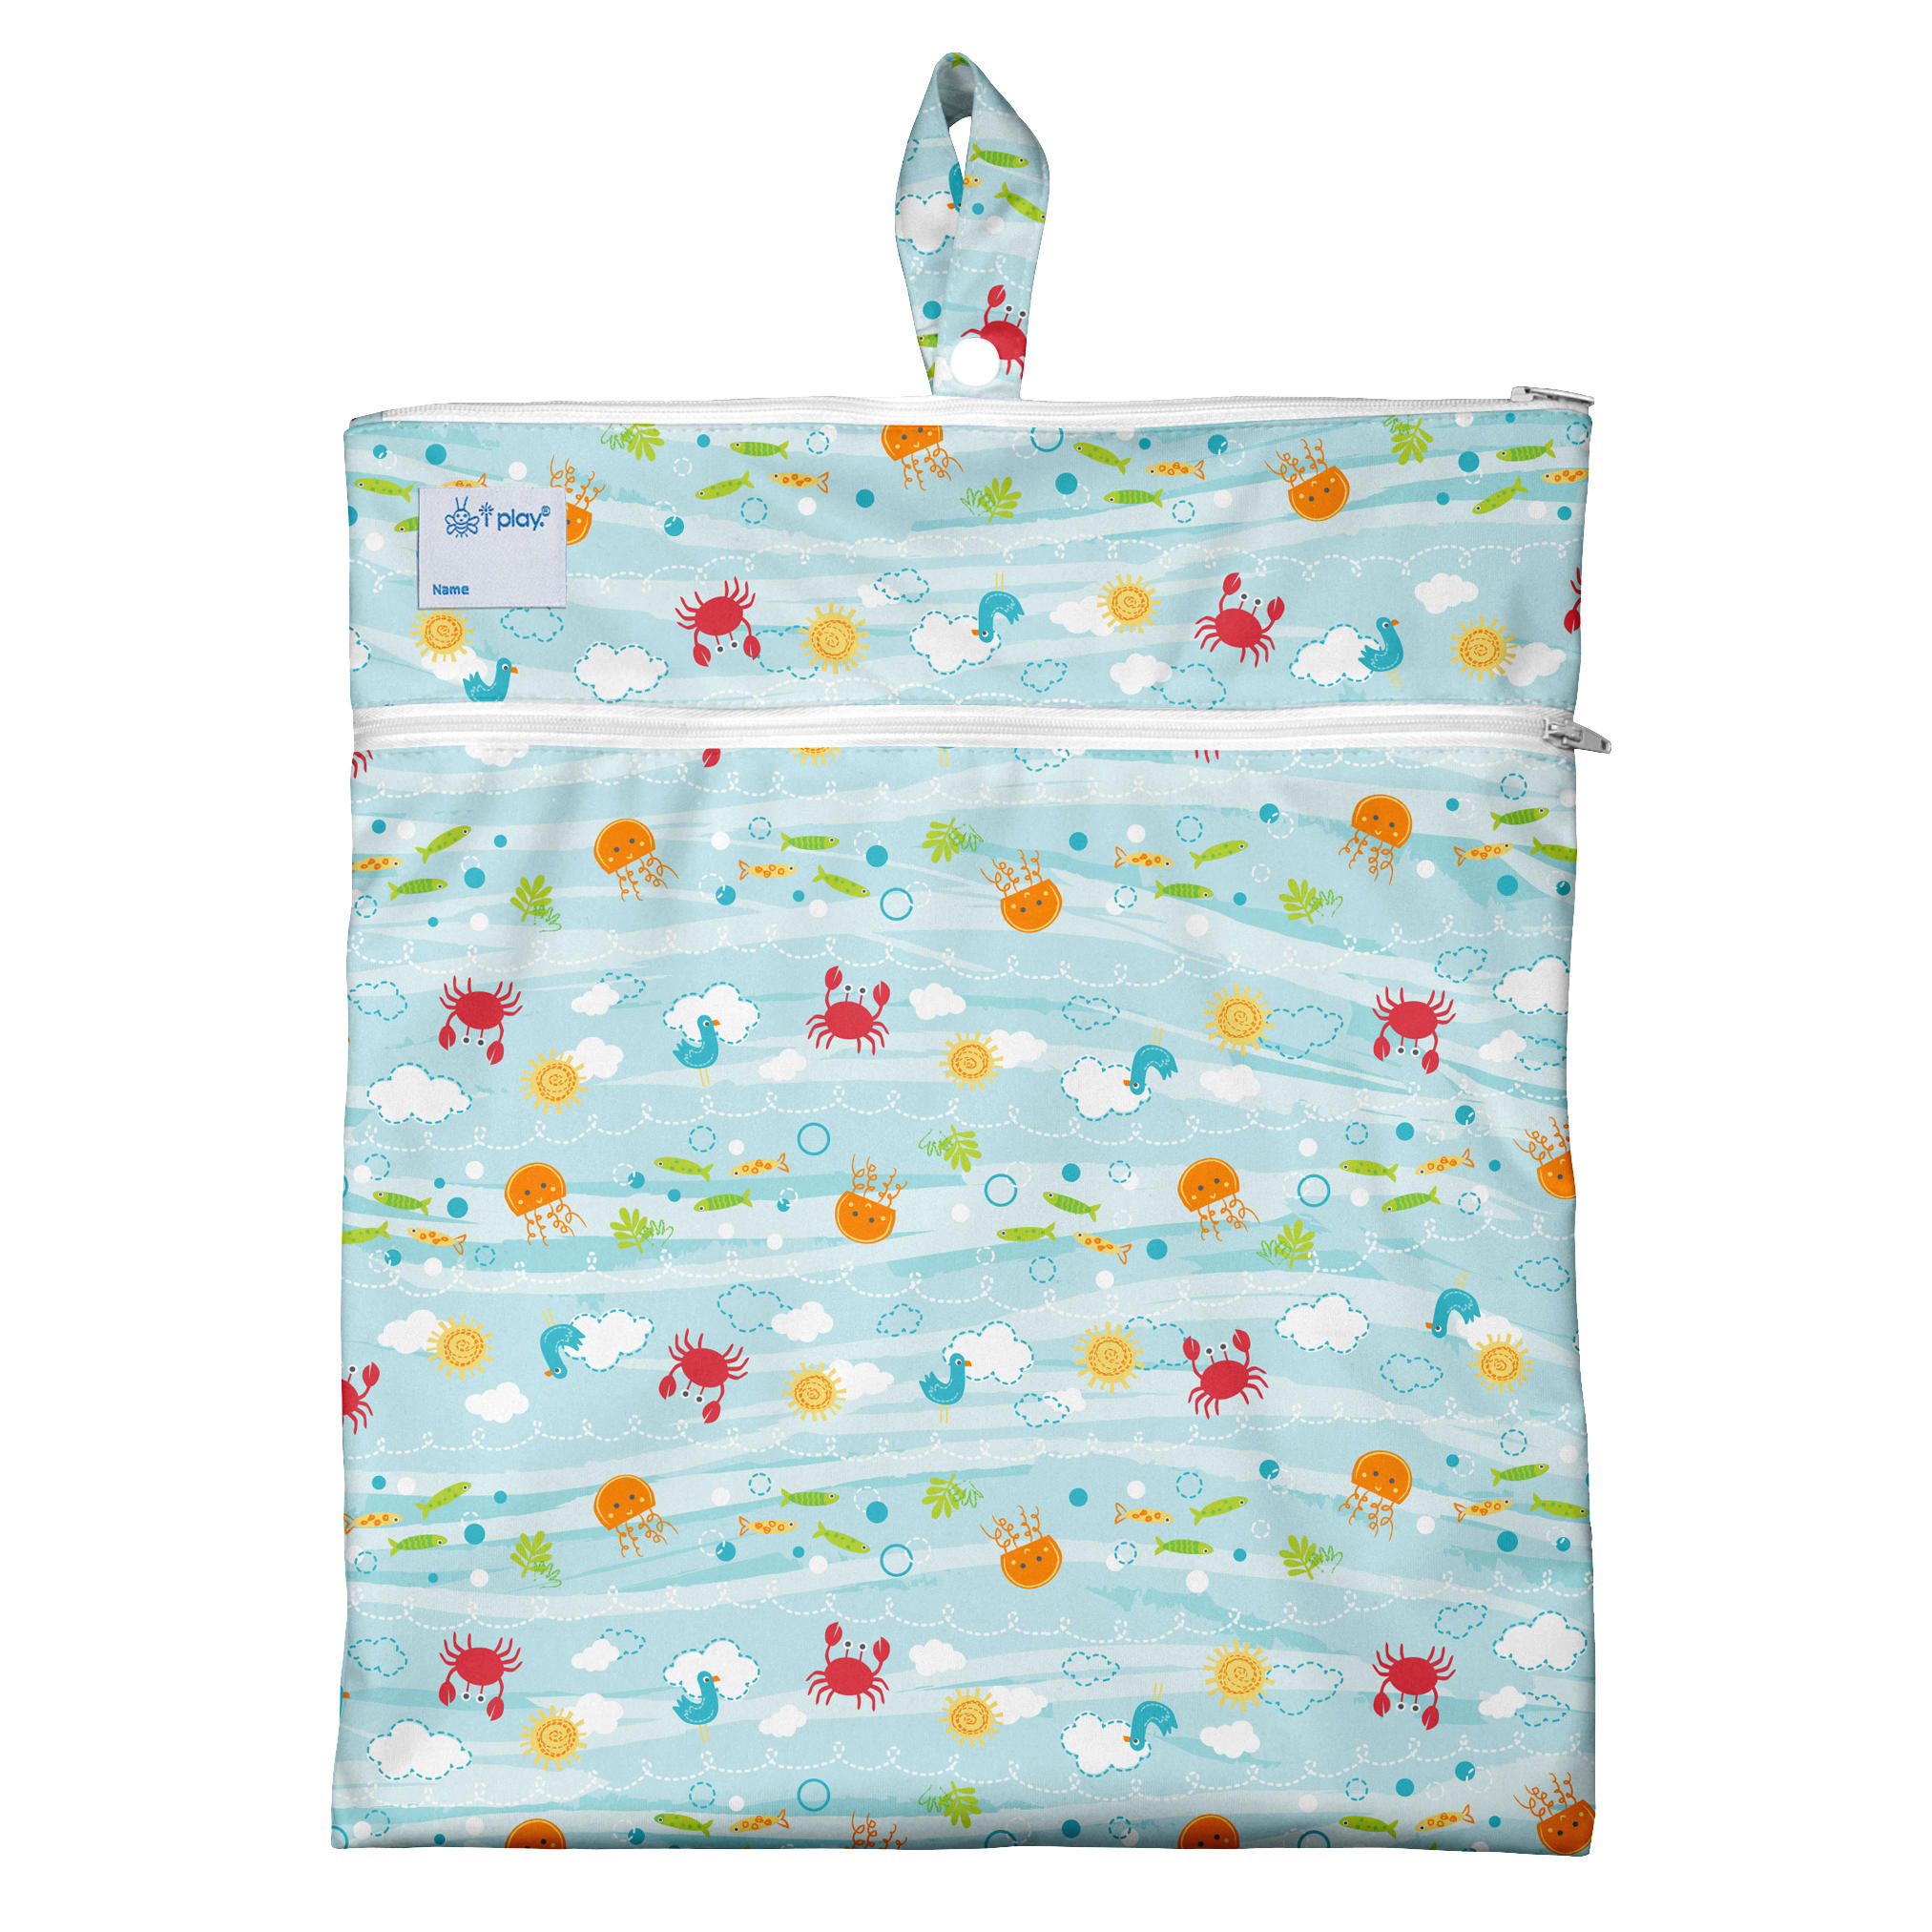 Bolso Impermeable Celeste Sea Friends Green Sprouts